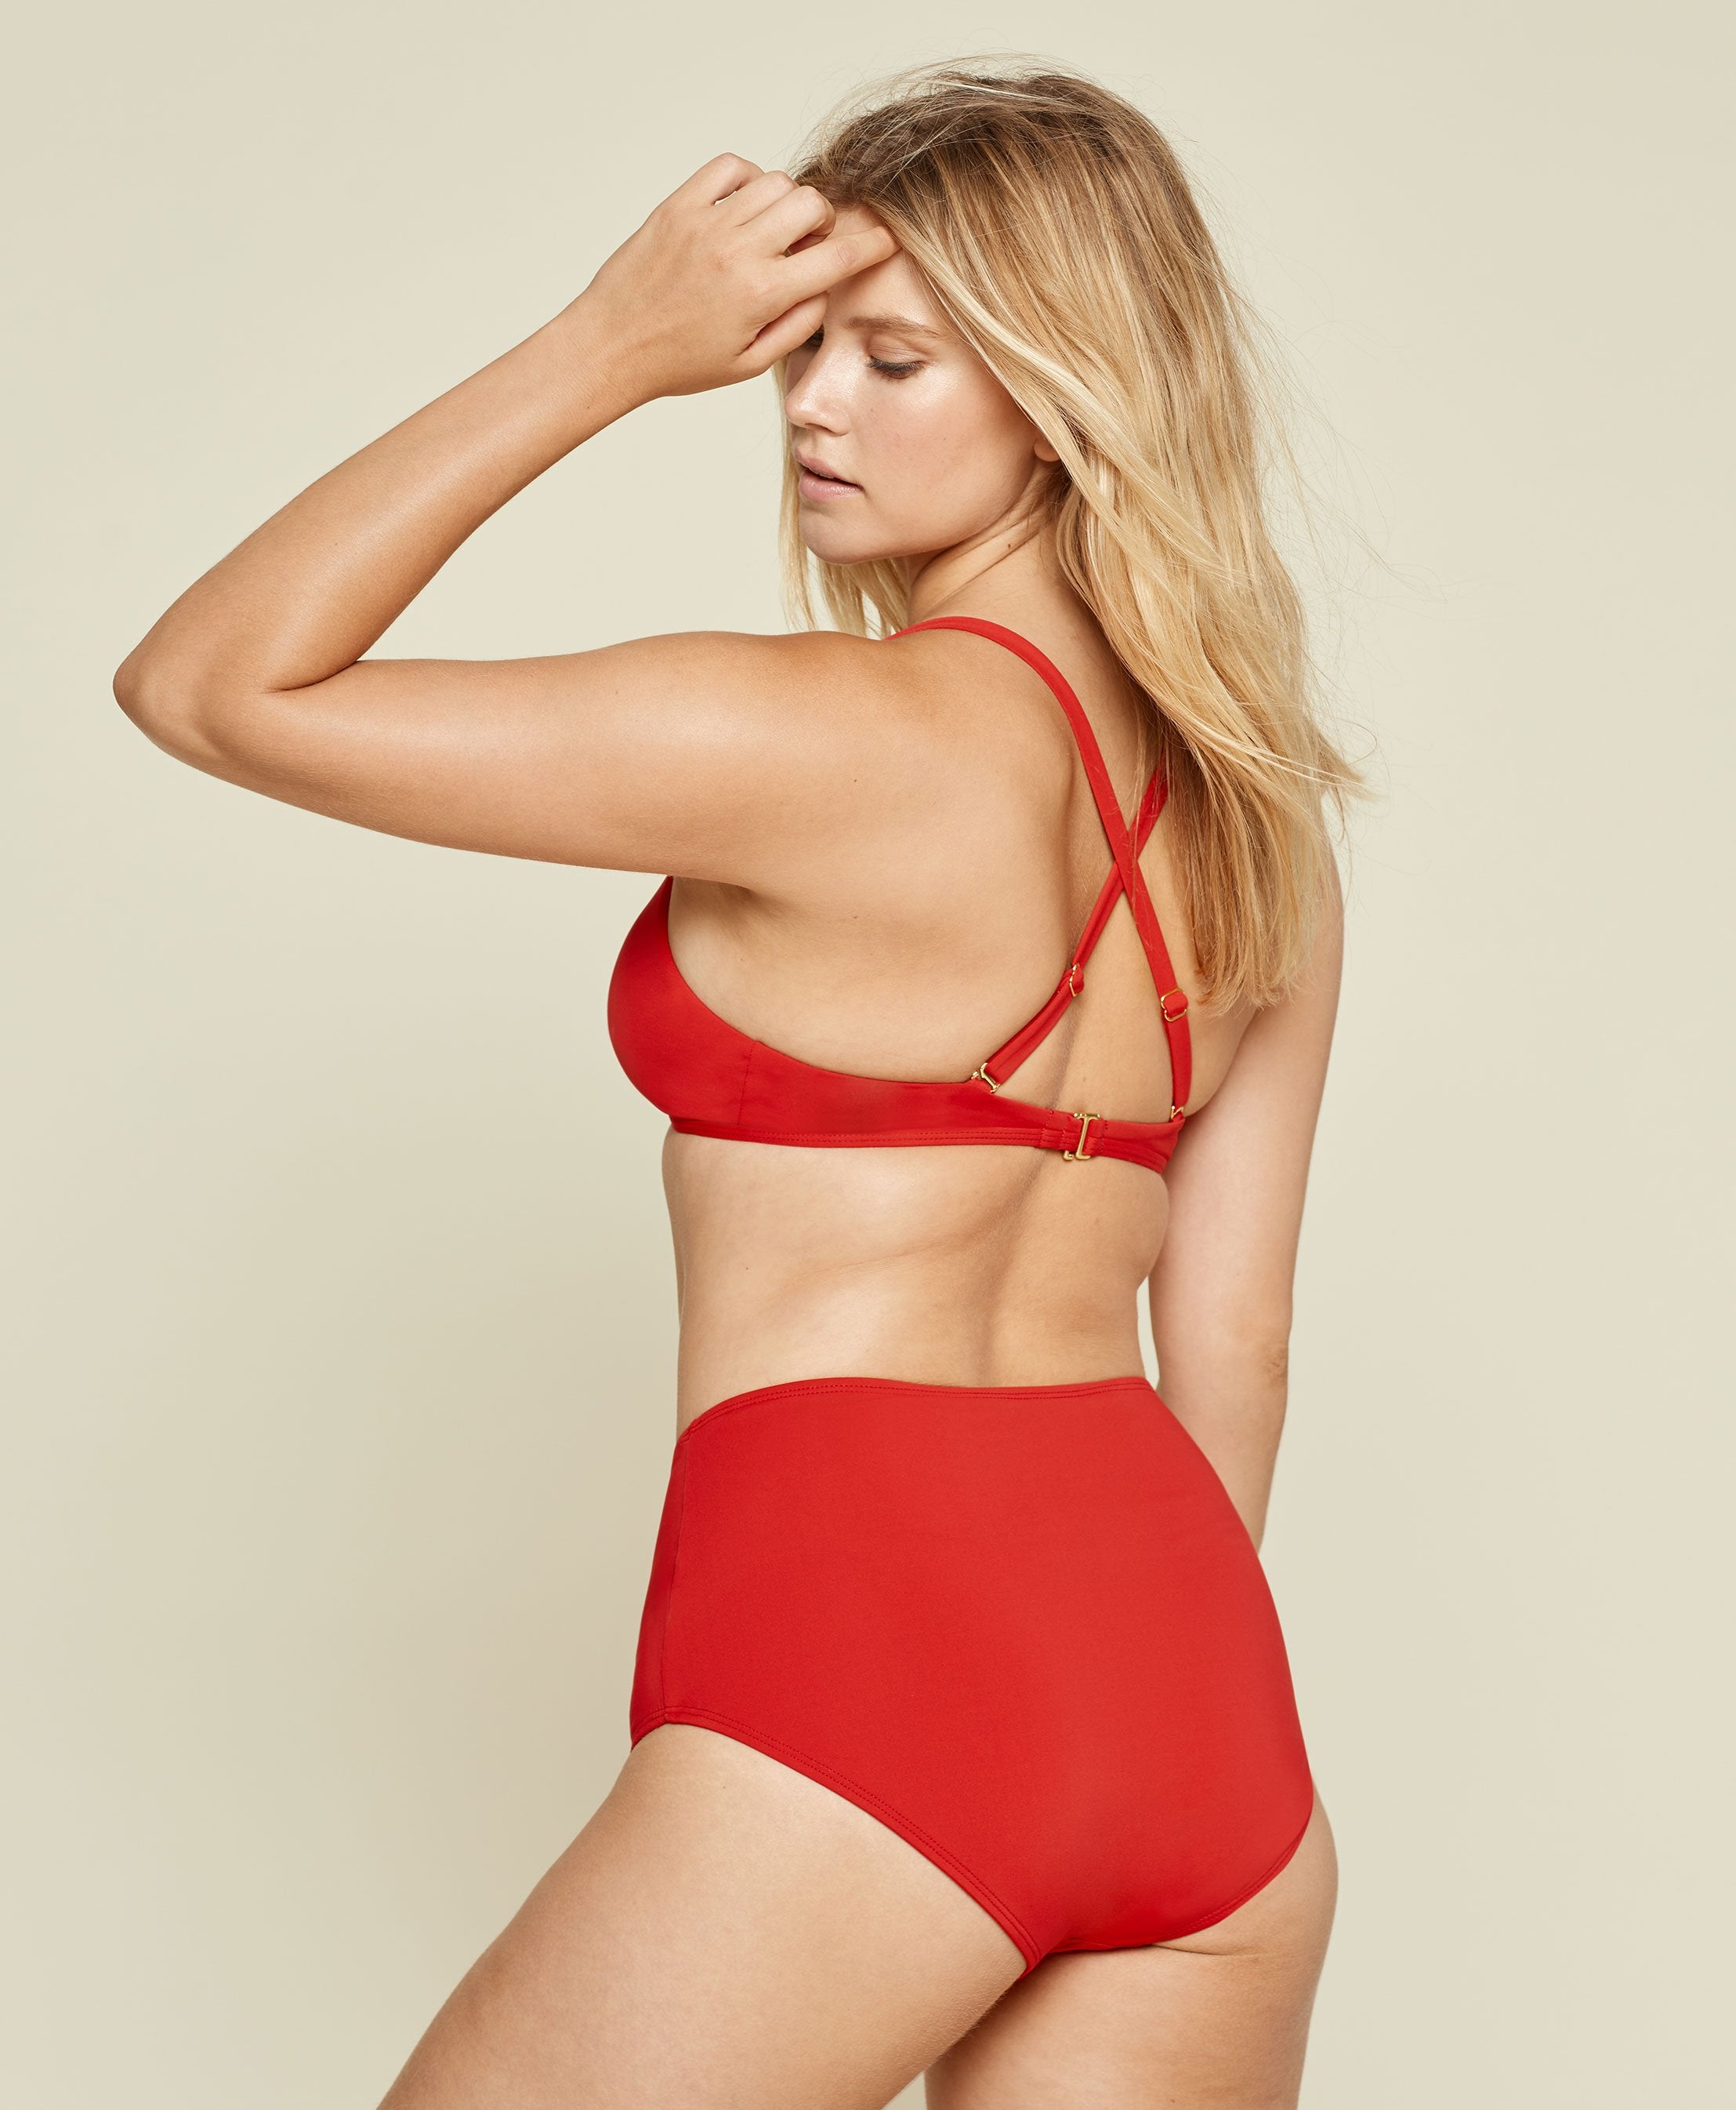 The High - Waisted Bottom - Flat - Cherry Red